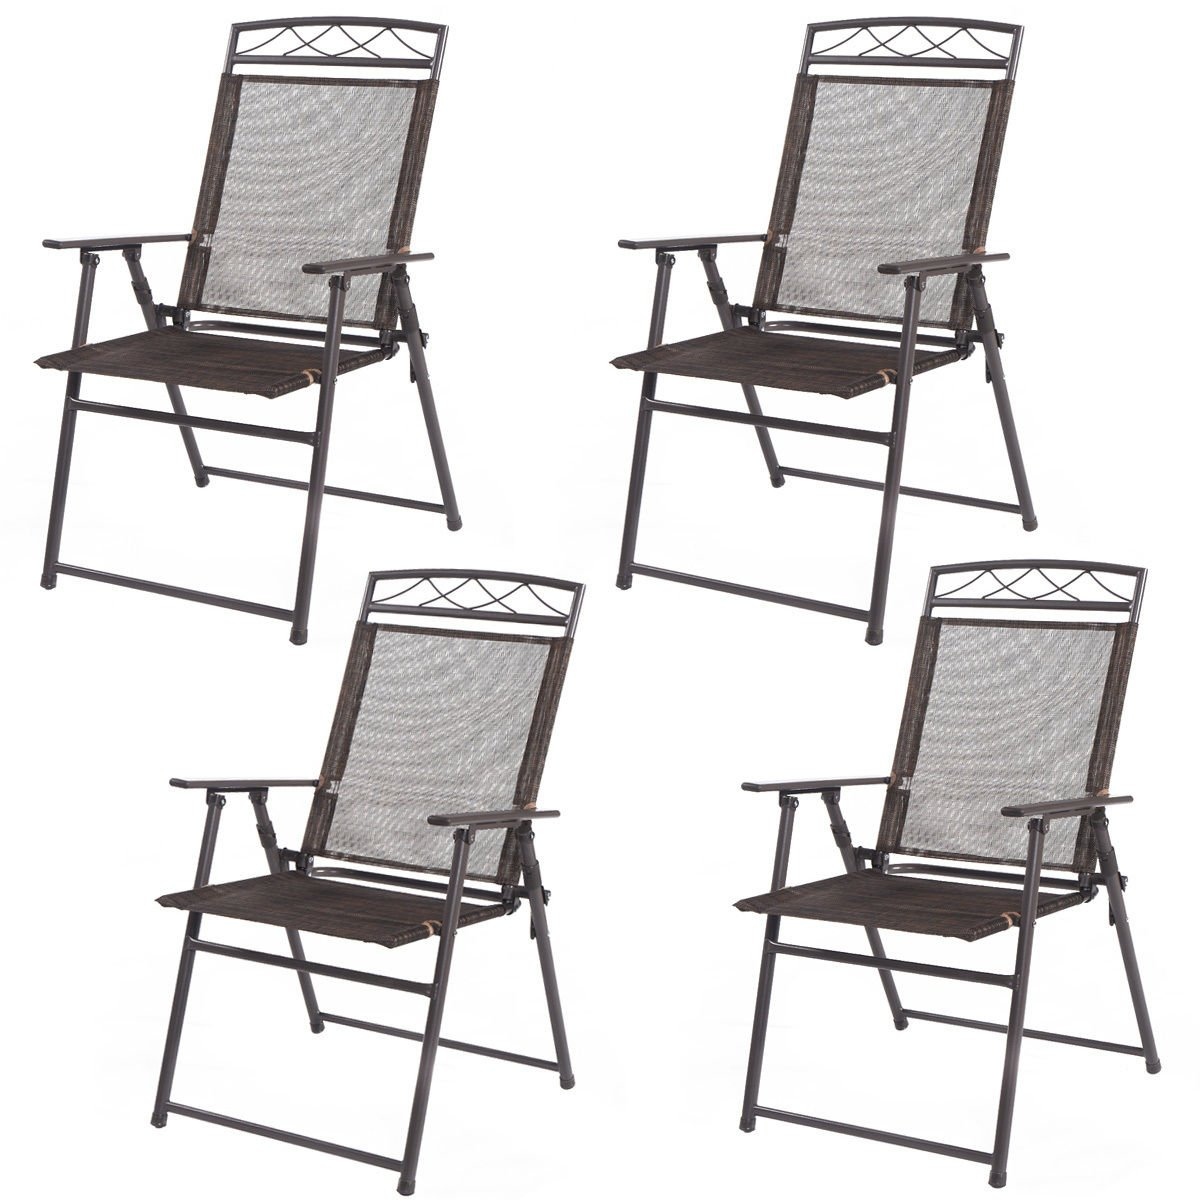 lunanice Set of 4 Patio Folding Sling Chairs Steel Textilene Camping Deck Garden Pool New